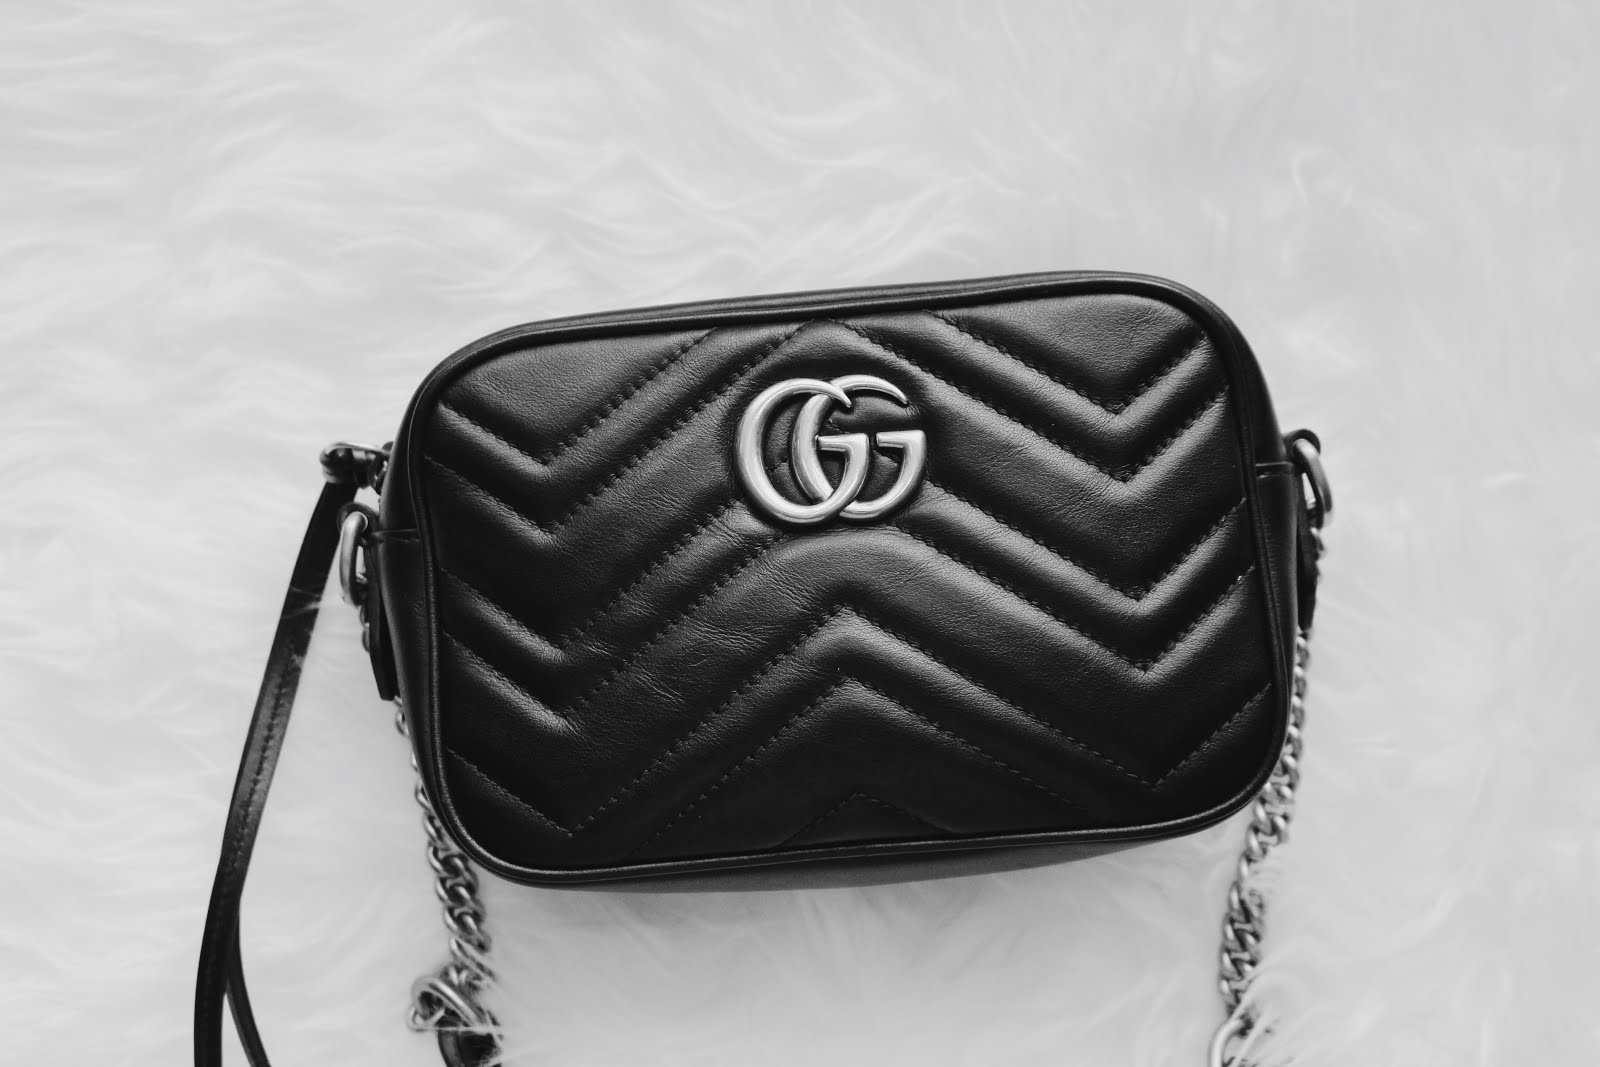 332bb4ffc1c37d A few months ago, I decided to purchase the Gucci GG Marmont Matelassé Mini  Bag. The bag retails at $980 which when deciding between this bag and the  Gucci ...